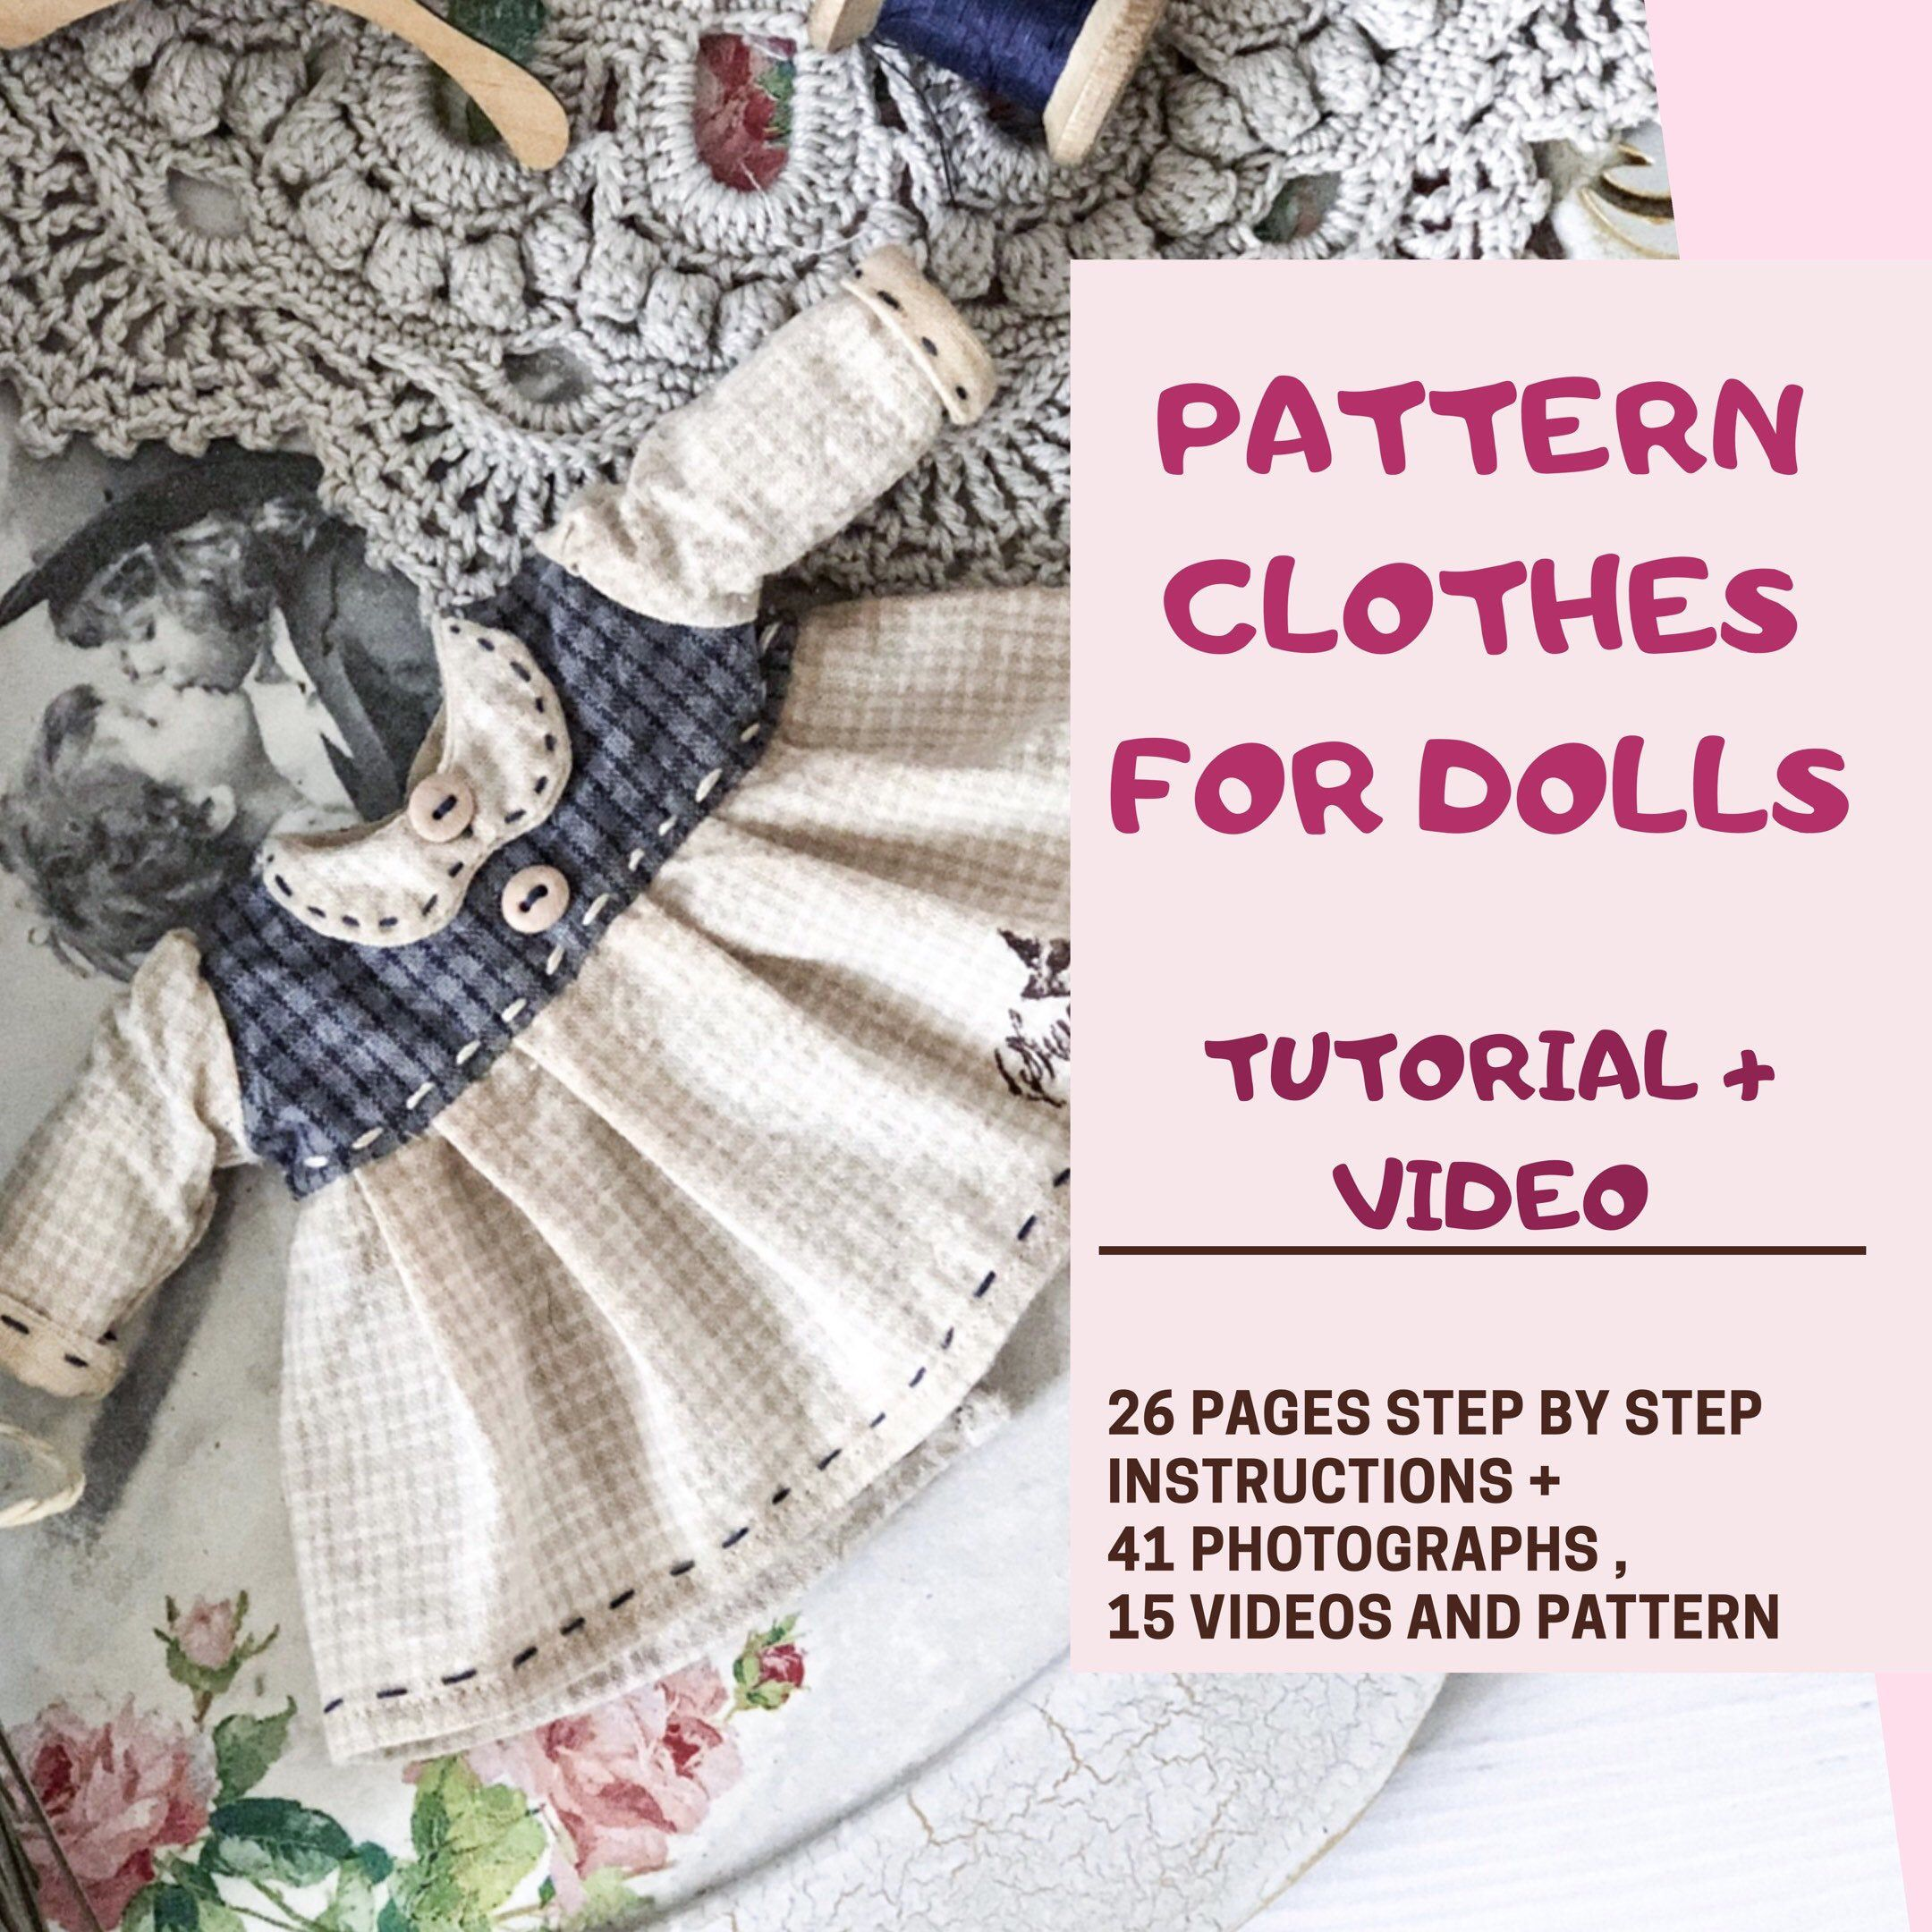 Doll dress PDF .Step by step Tutorial and Pattern for dolls 8 (20cm) .Doll clothes tutorial .Easy rag doll dress tutorial and pattern PDF. #dolldresspatterns